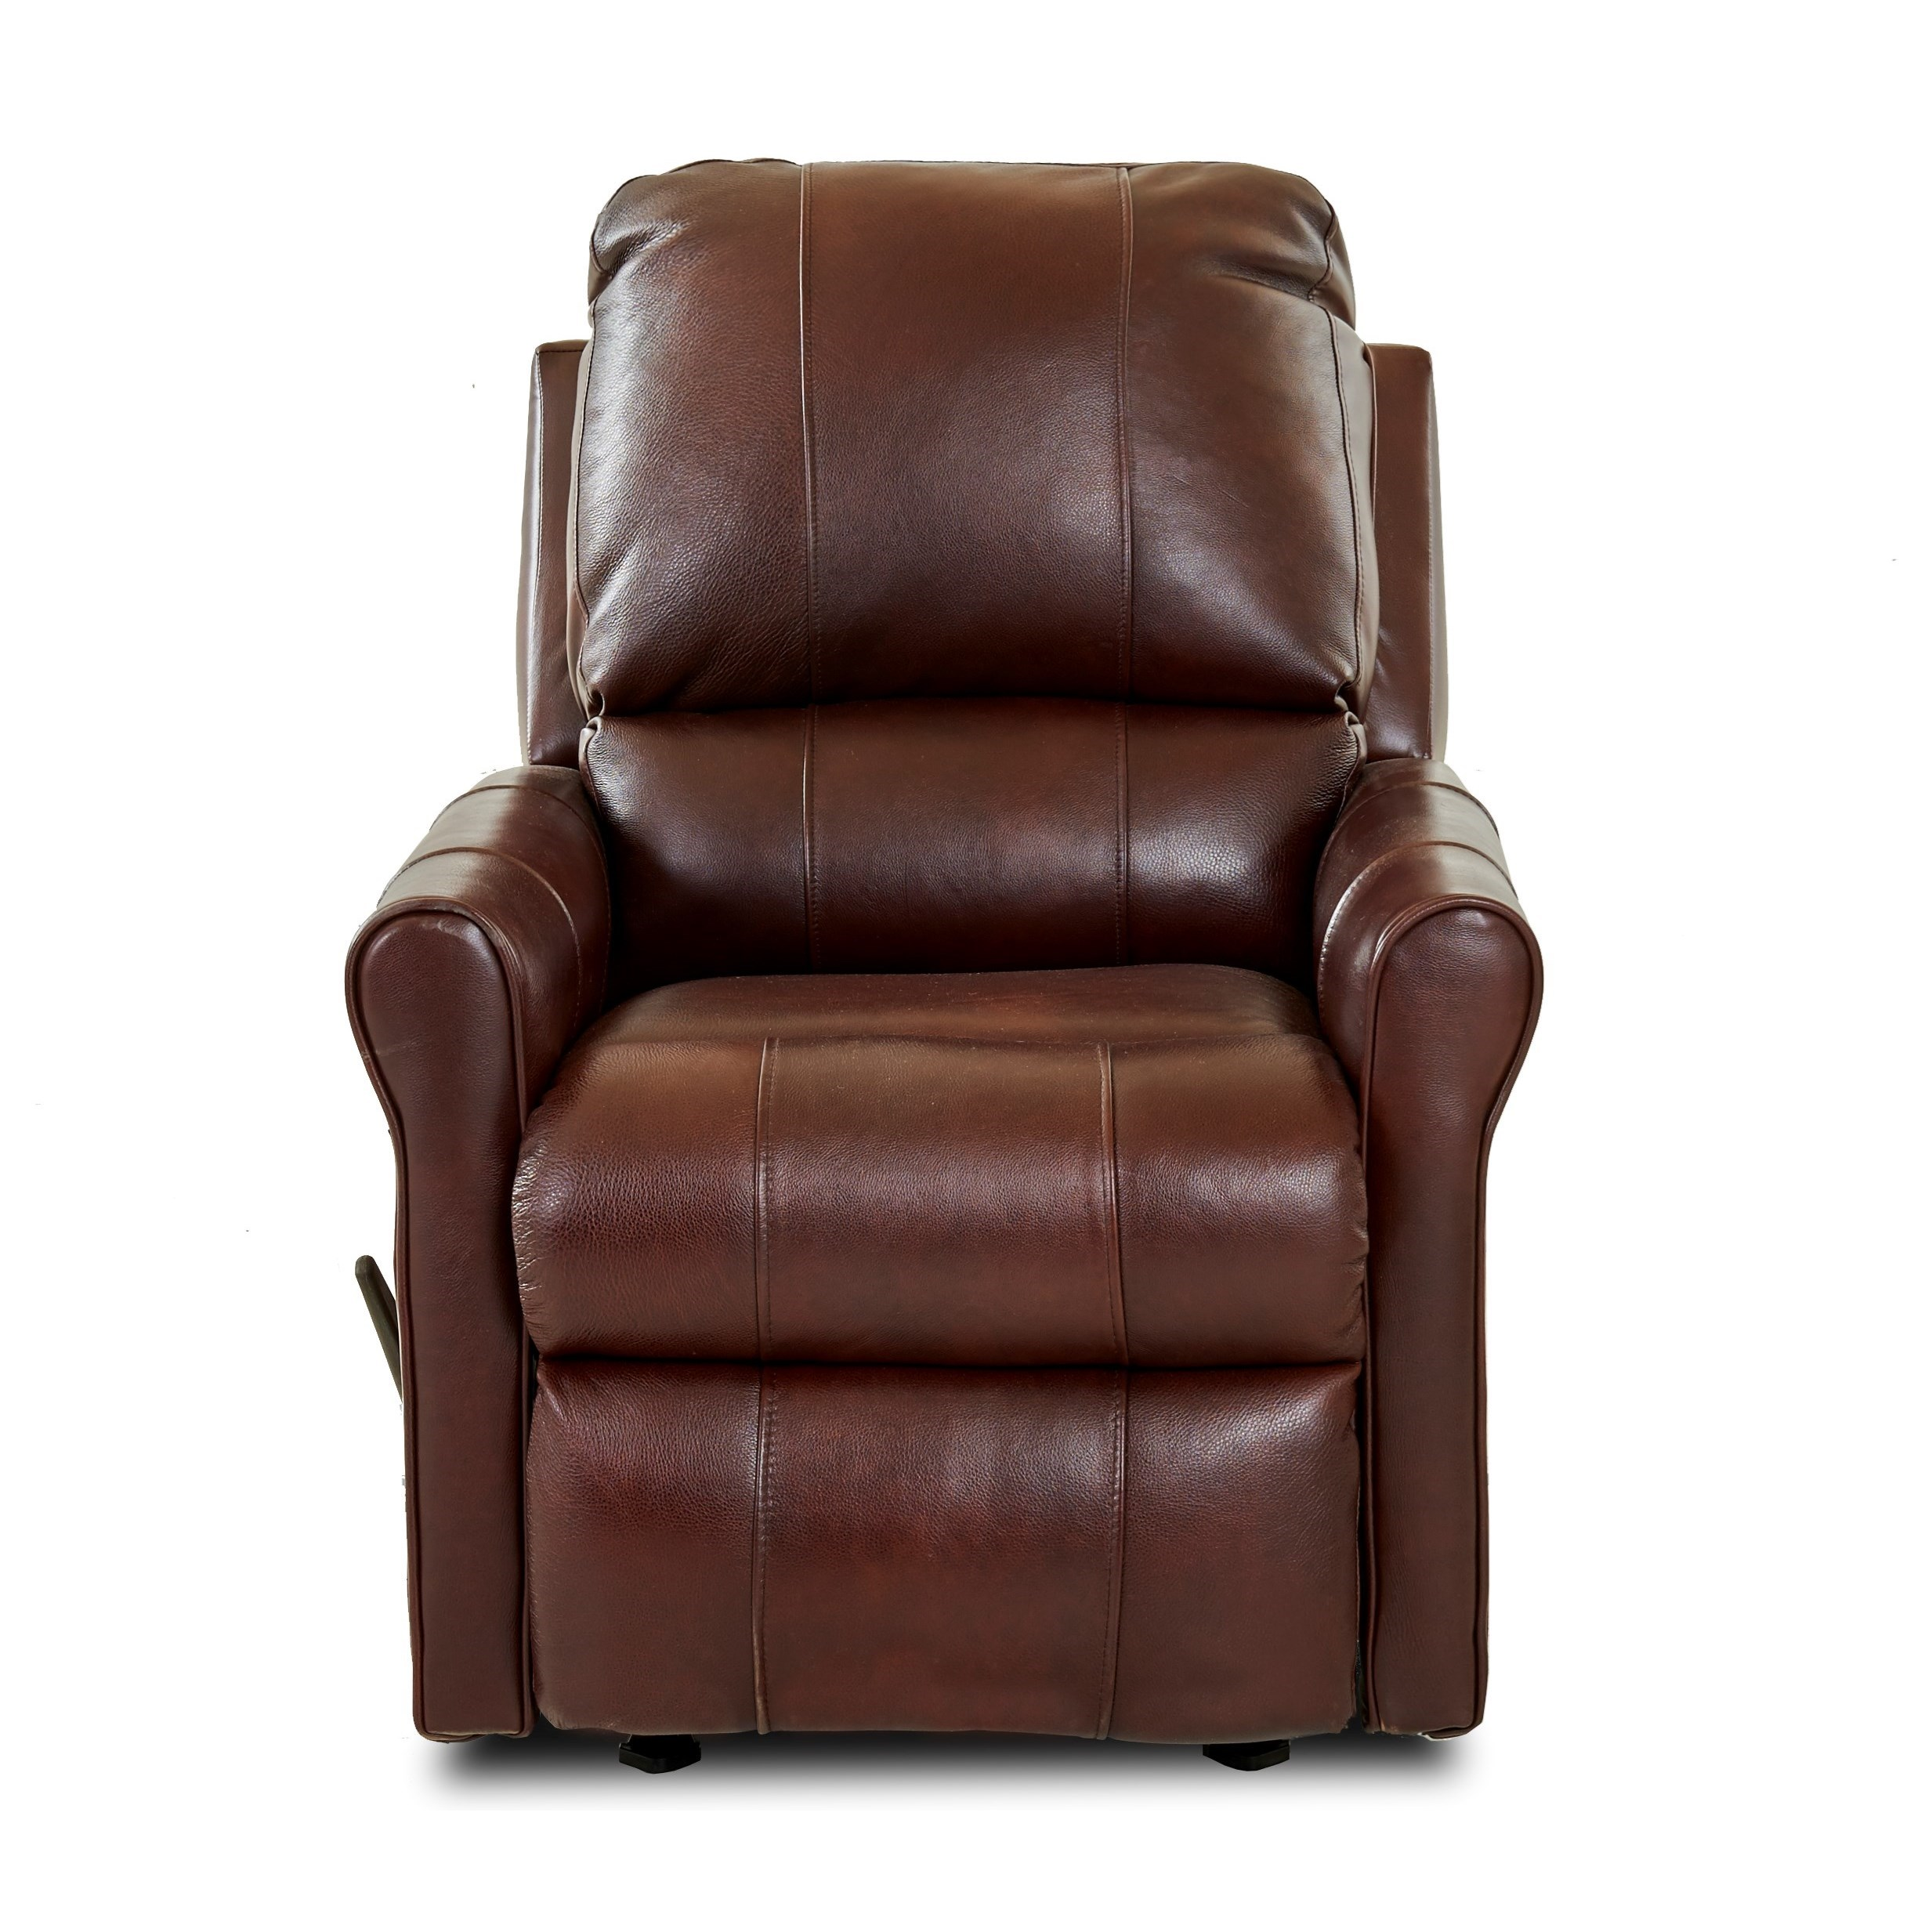 Baja Gliding Reclining Chair by Klaussner at Lapeer Furniture & Mattress Center